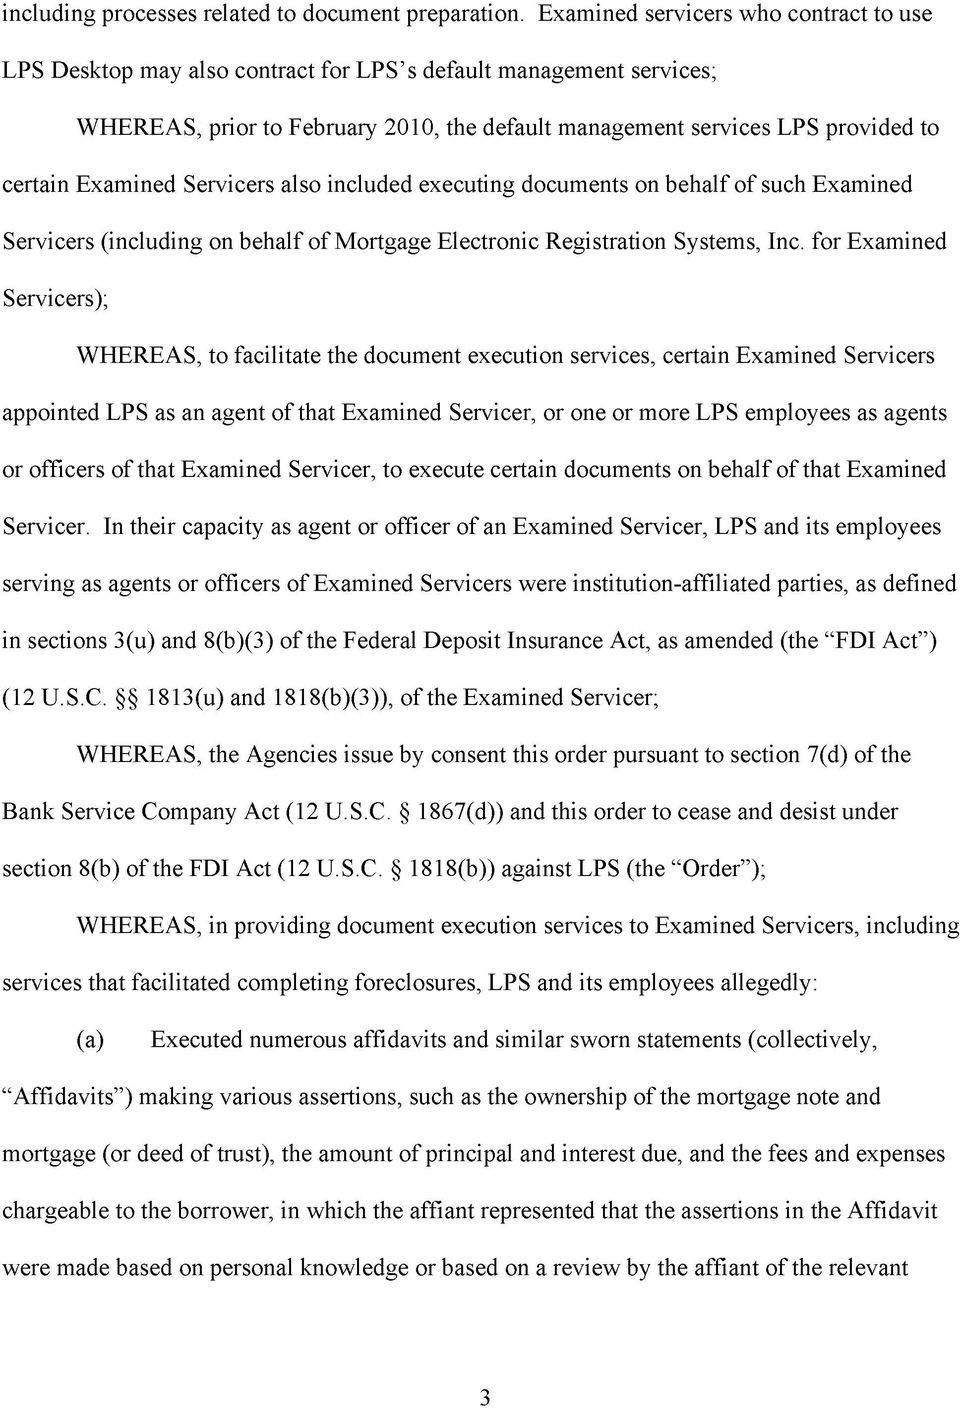 Examined Servicers also included executing documents on behalf of such Examined Servicers (including on behalf of Mortgage Electronic Registration Systems, Inc.